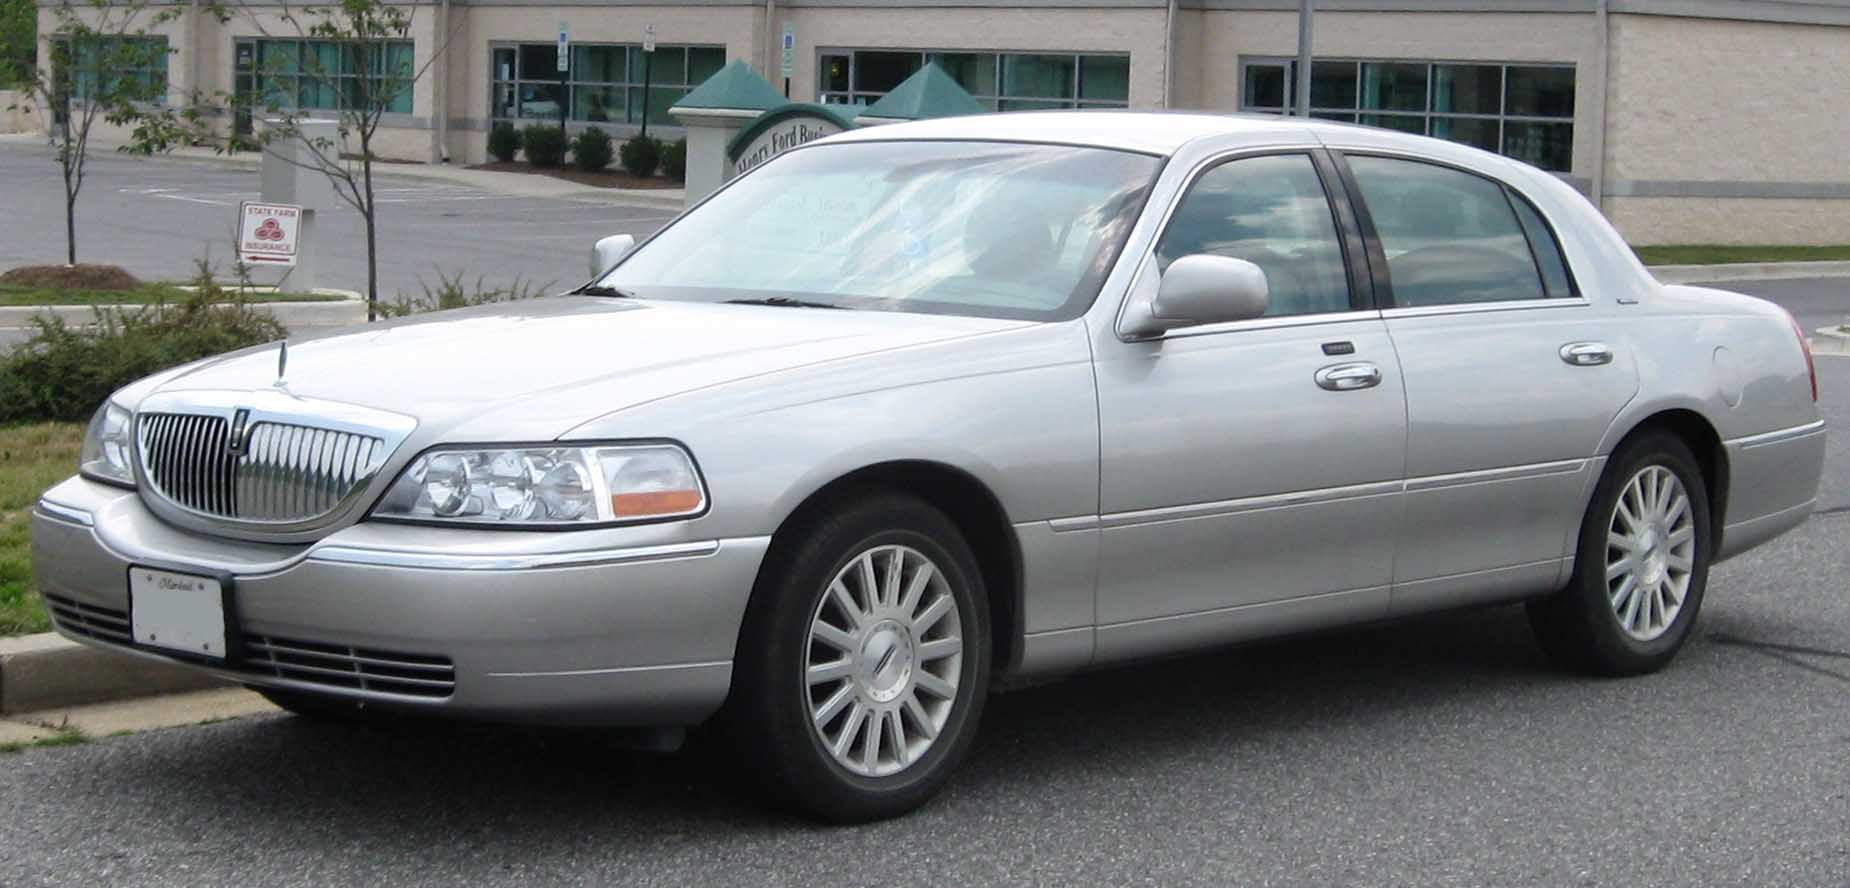 lincoln town car wikipedia. Black Bedroom Furniture Sets. Home Design Ideas